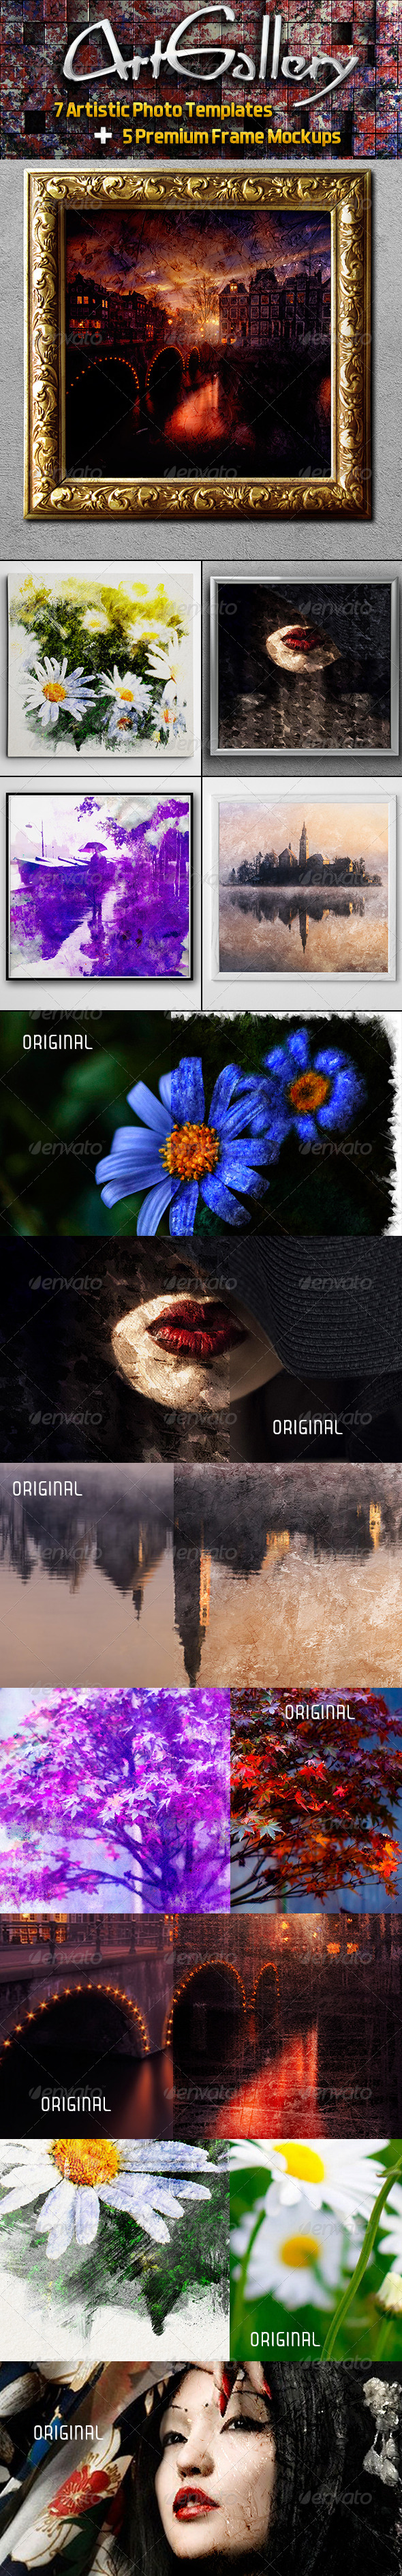 GraphicRiver Art Gallery 7725493